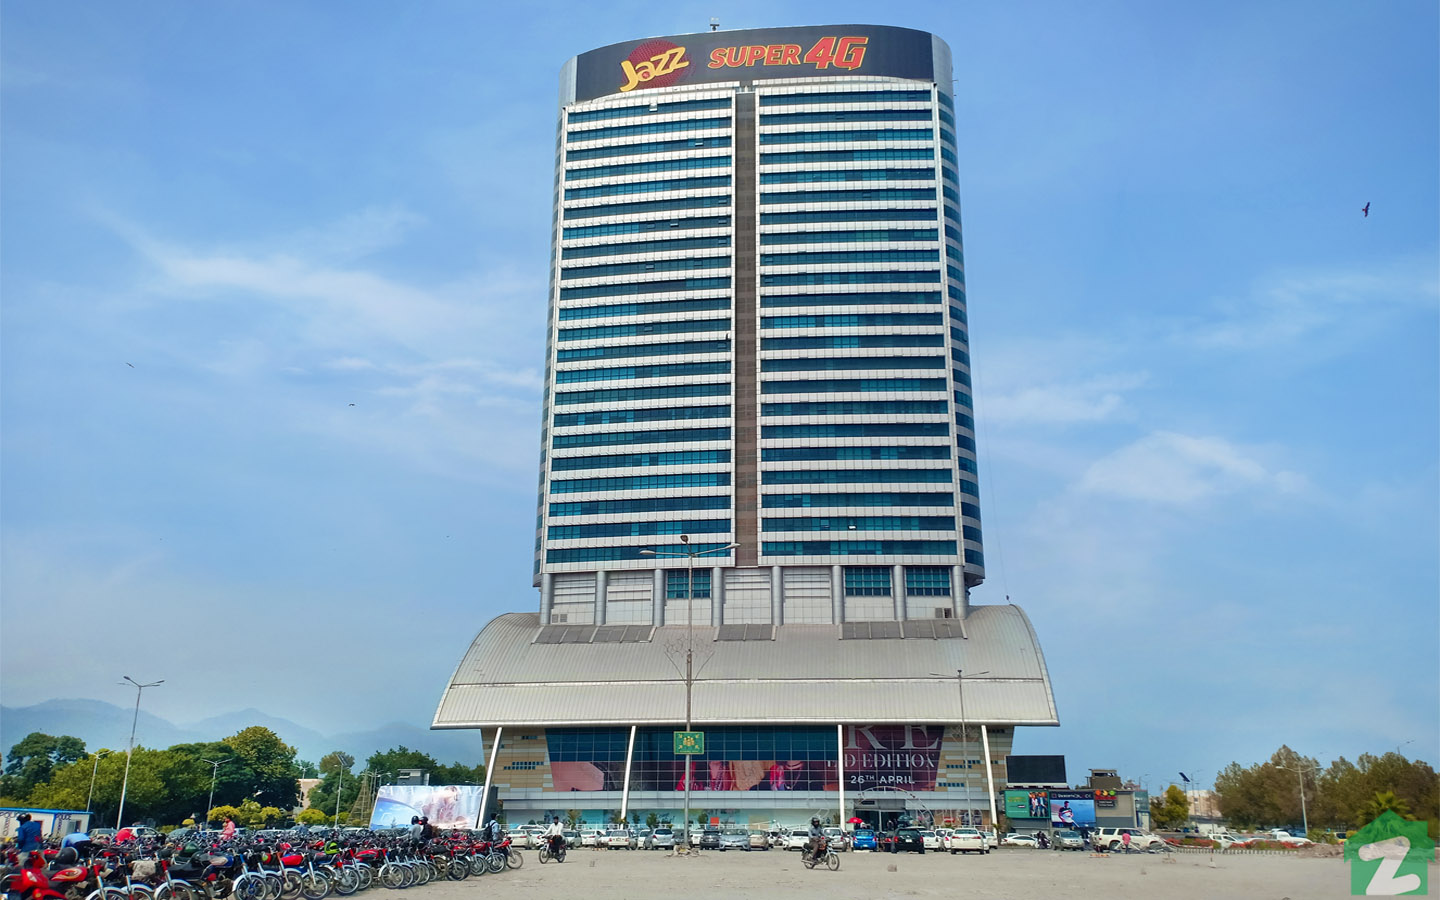 Centaurus Mall is a famous shopping and residential complex situated in Blue Area, Islamabad